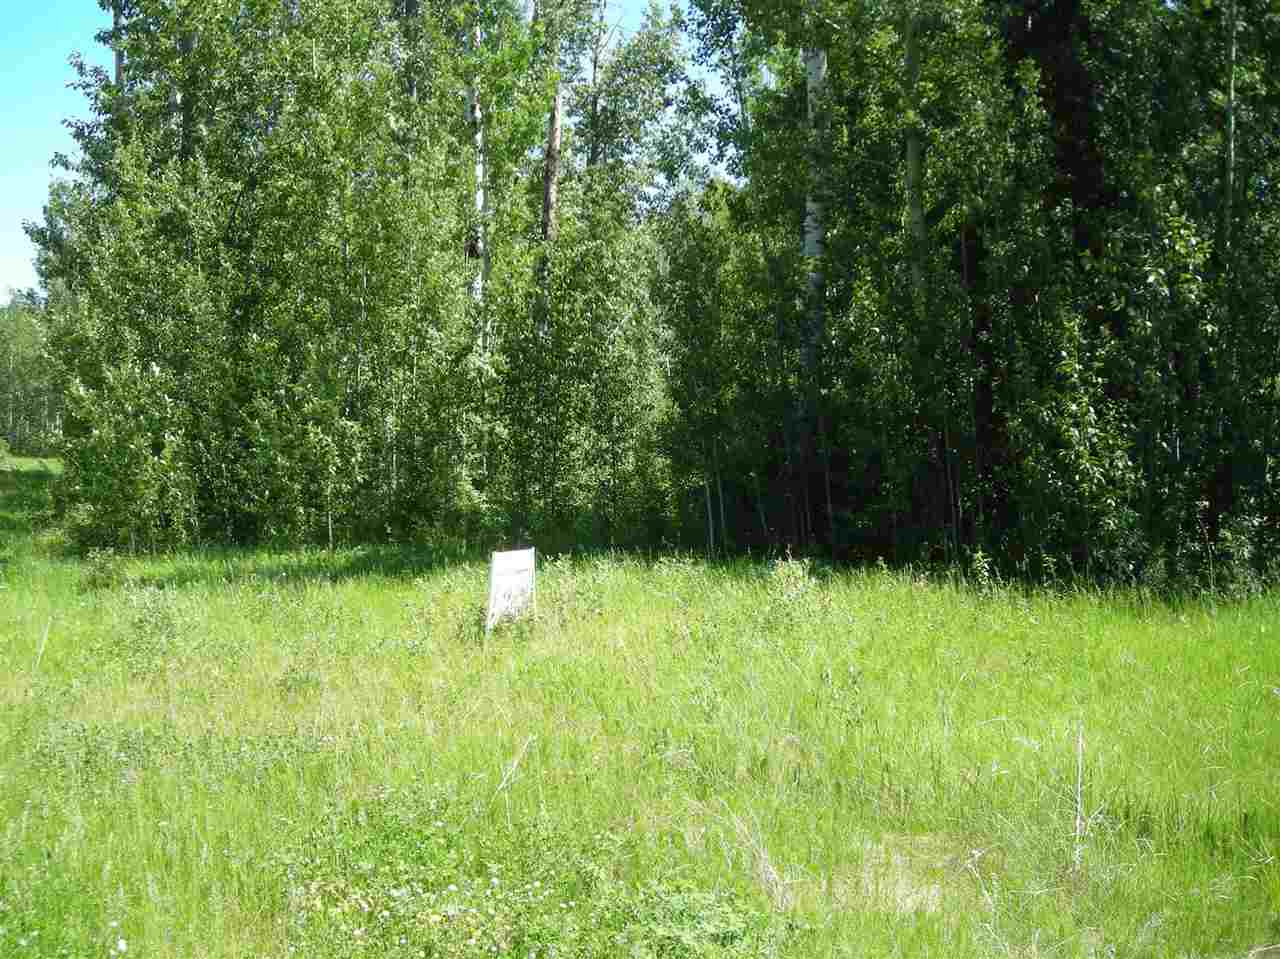 Almost a .5 acre in Village West Estates. Services to the property line. Large trees on site. Walking trails around the property, also a short walk to the Village at Pigeon Lake that hosts several shops, restaurants and services. Escape the hustle and bustle of city life. Build your dream cottage here.